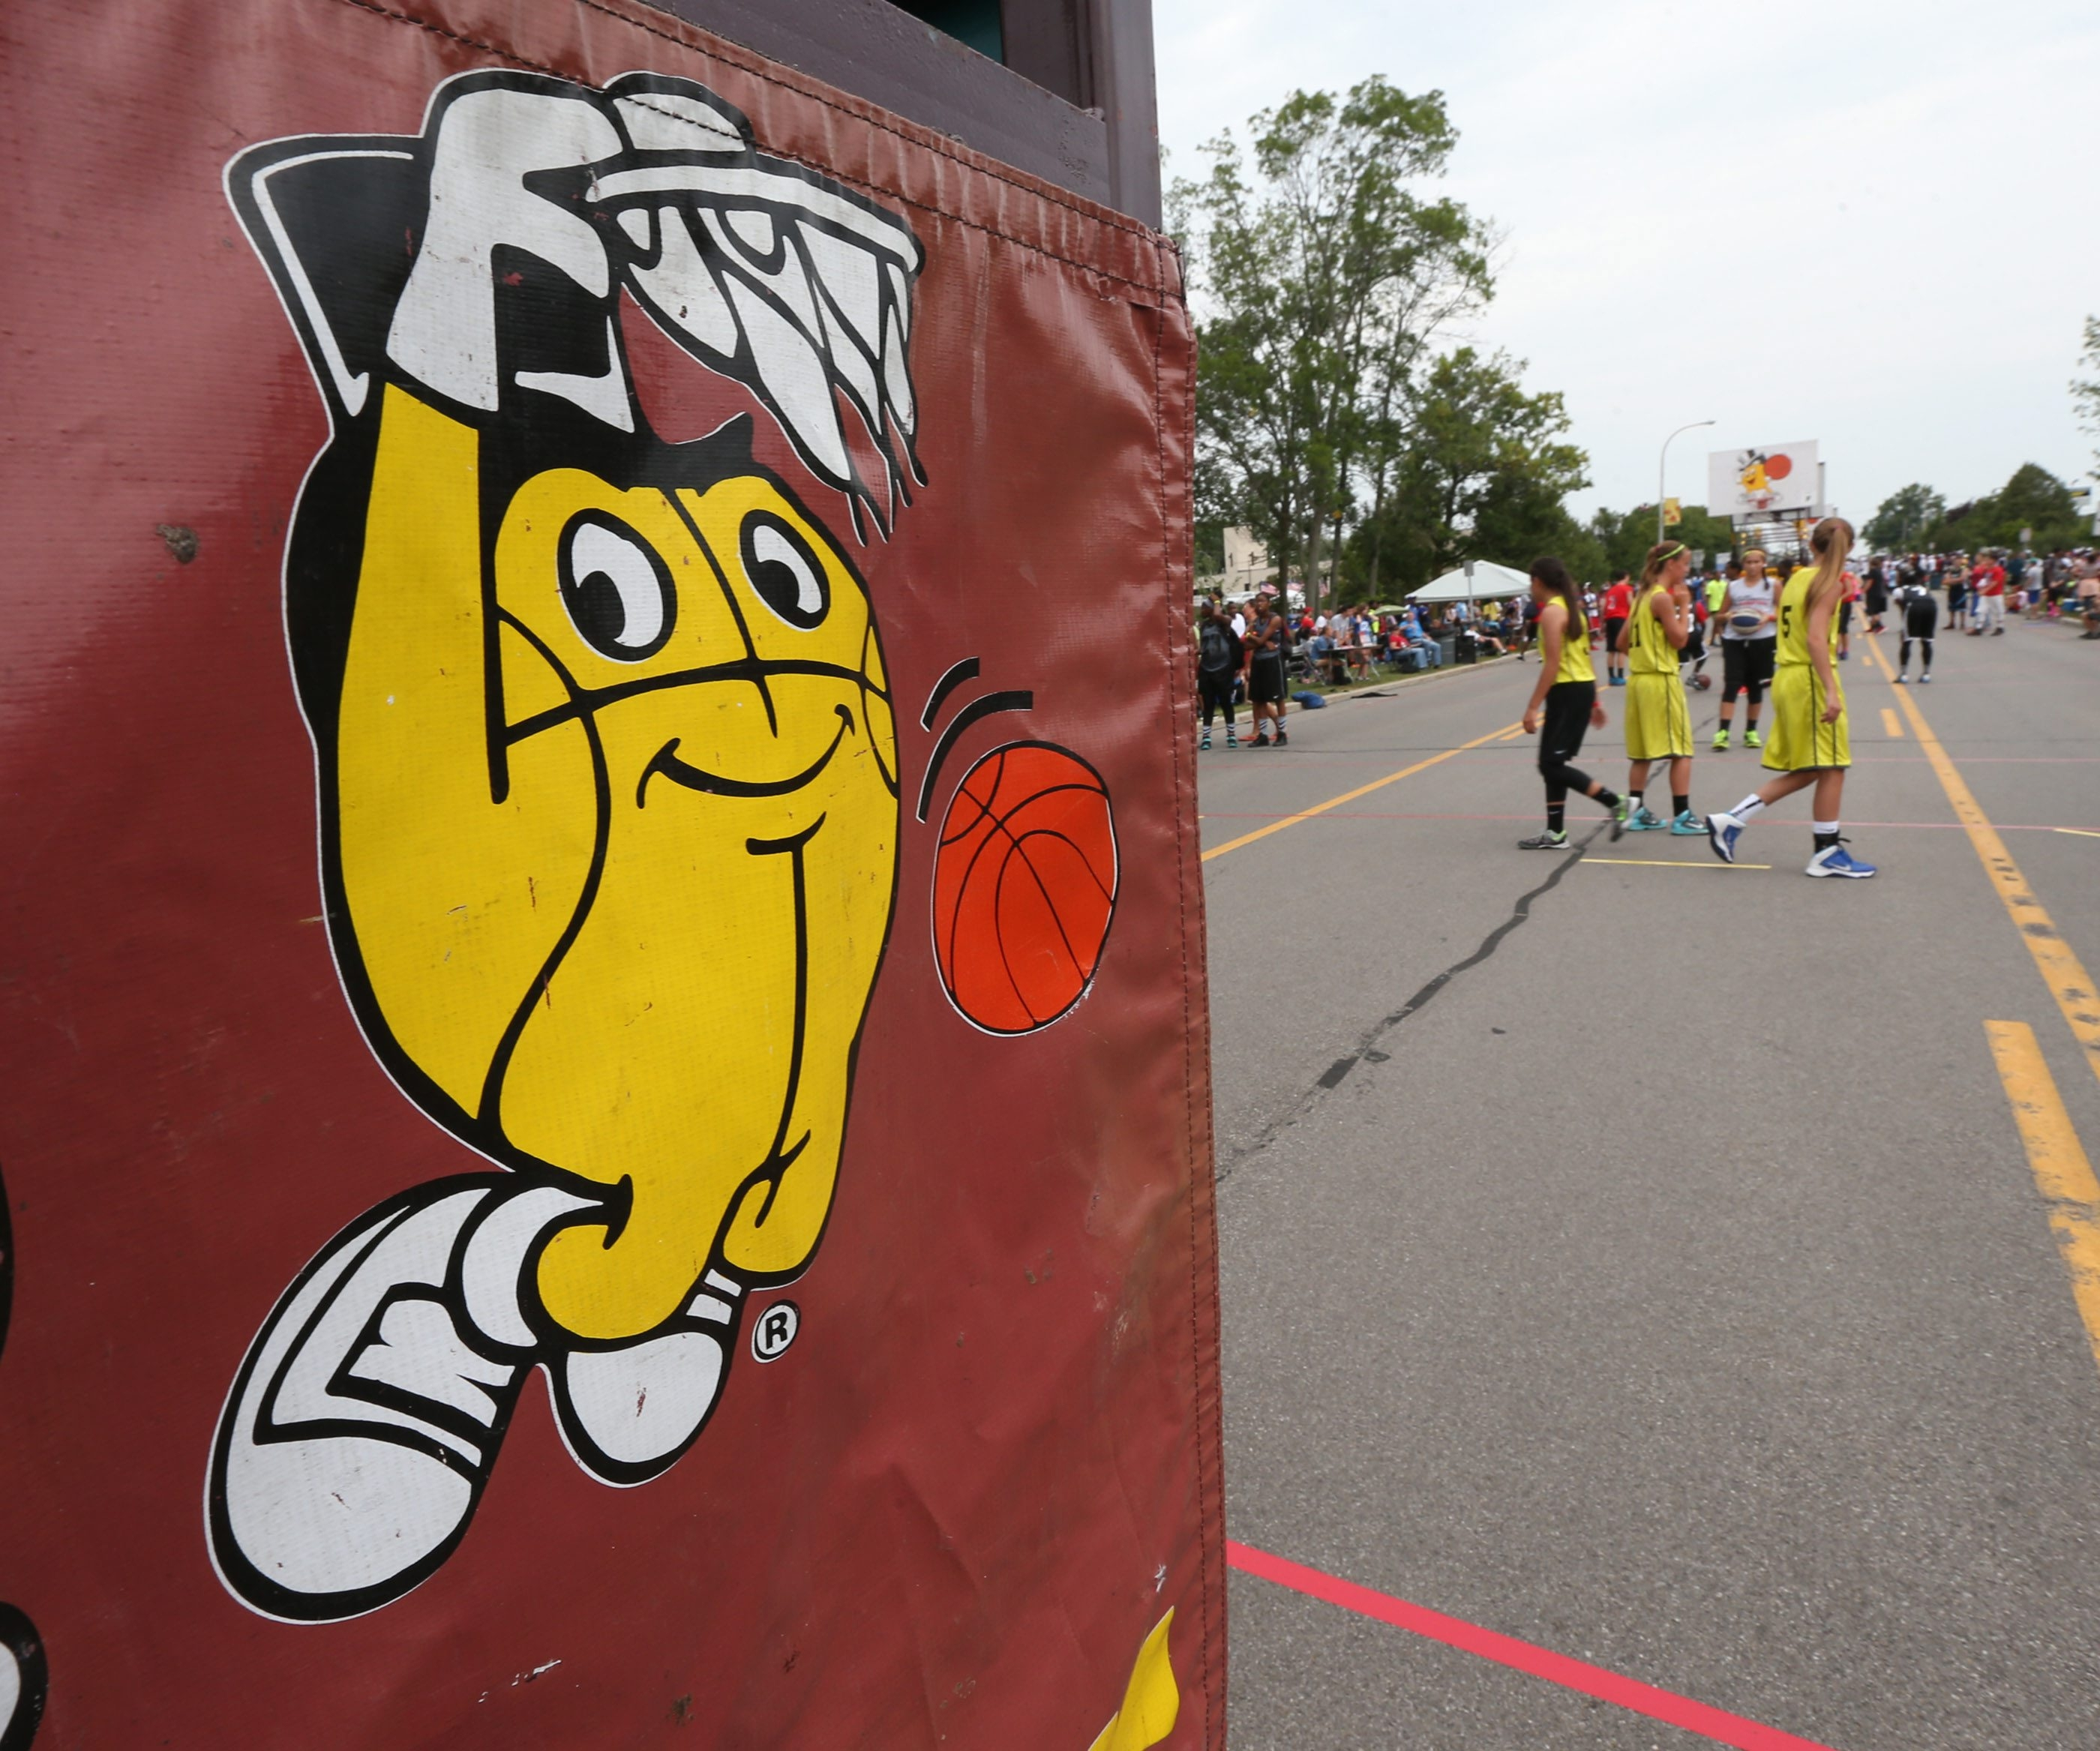 The Gus Macker will be held June 10-11 on Grand Island. (James P. McCoy/Buffalo News file photo)